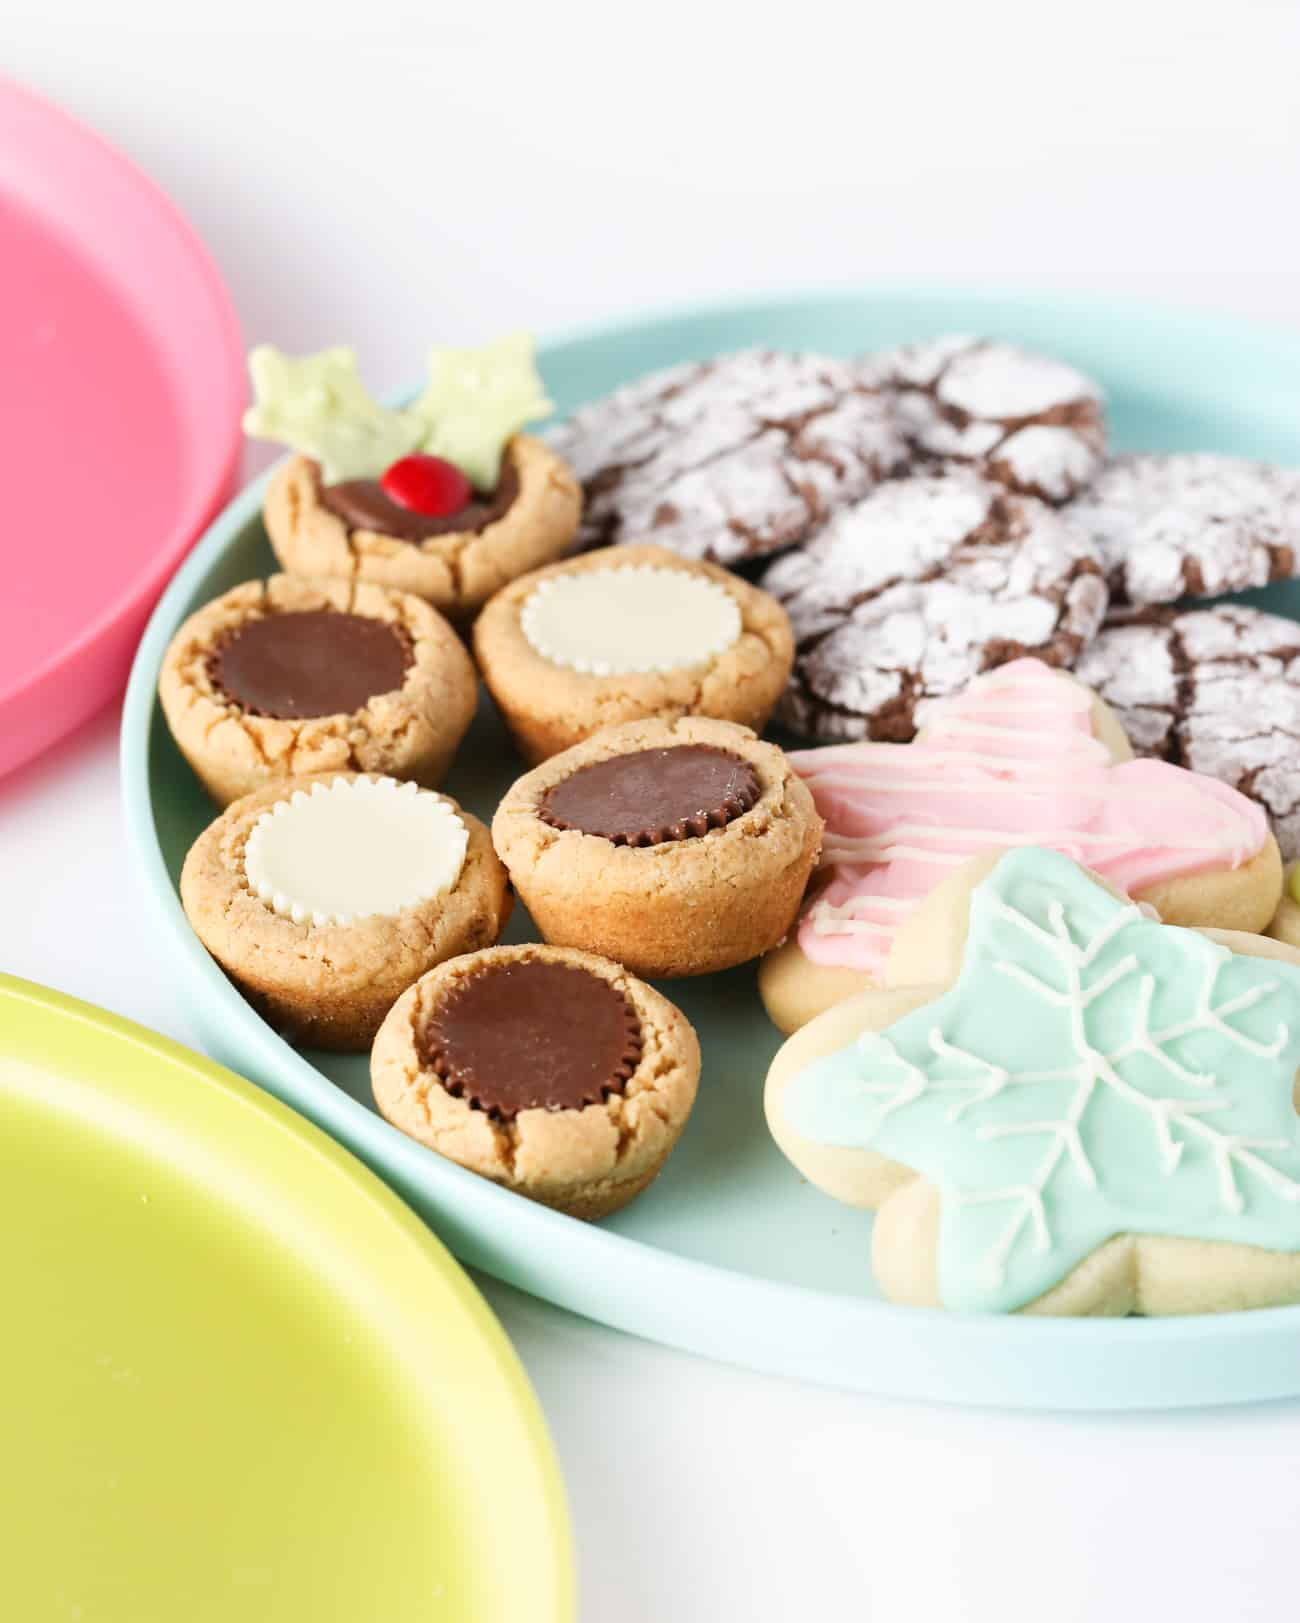 DIY Cookie tray with peanut butter cup cookies, sugar cookies, and brownie cookies.